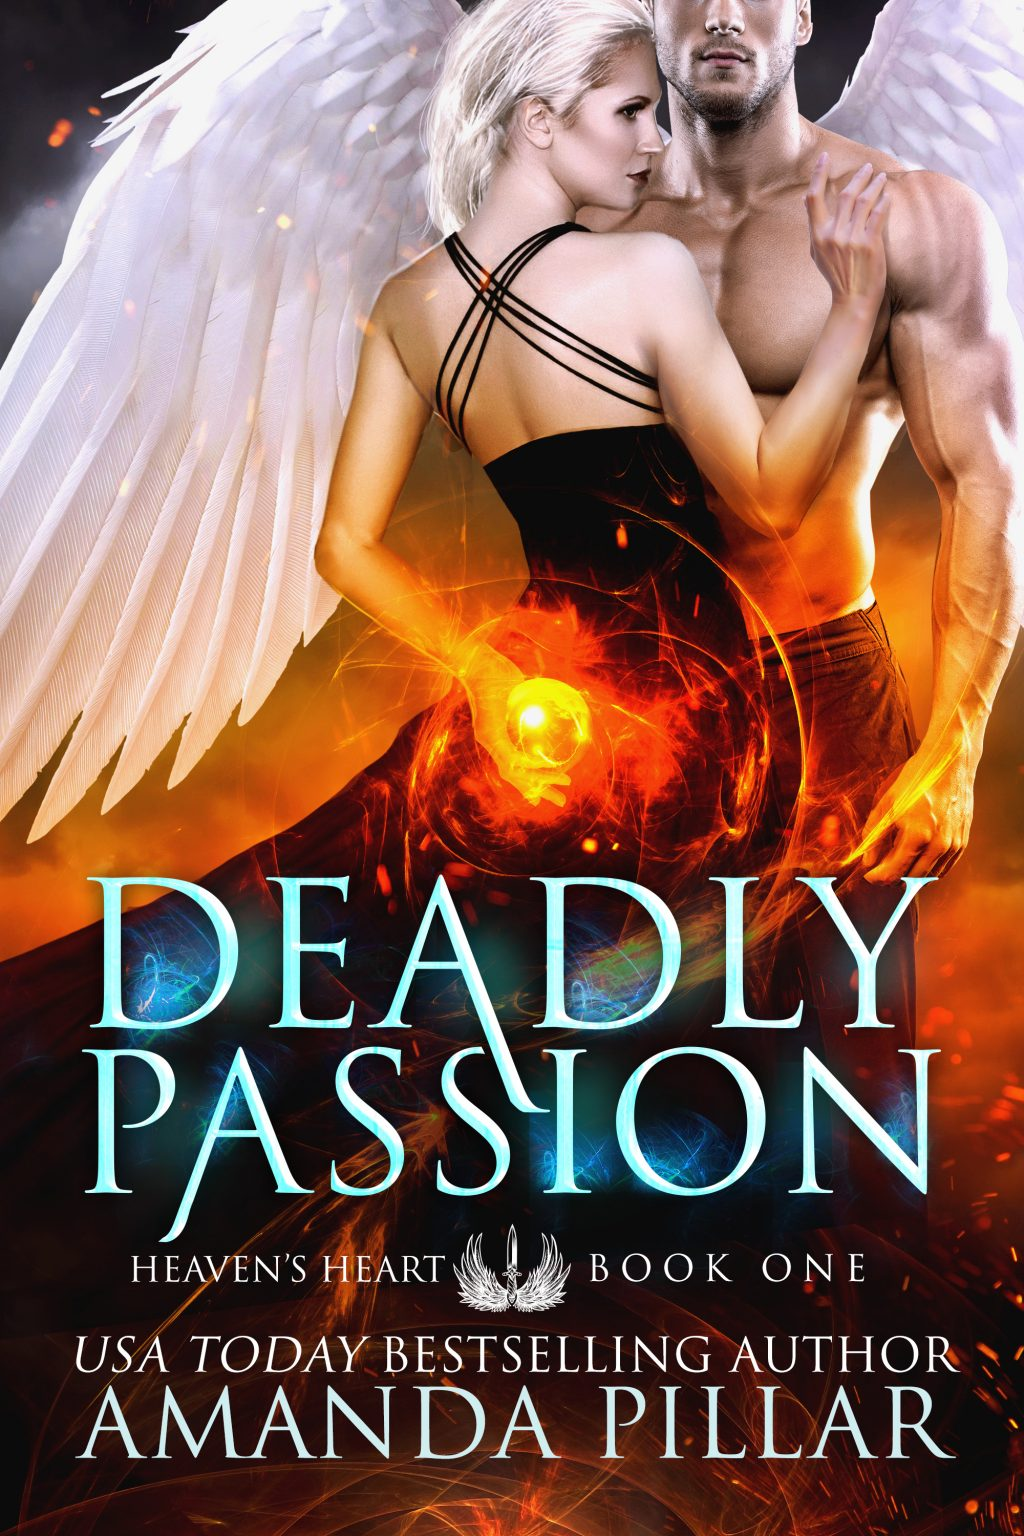 Deadly Passion (Heaven's Heart #1) by Amanda Pillar